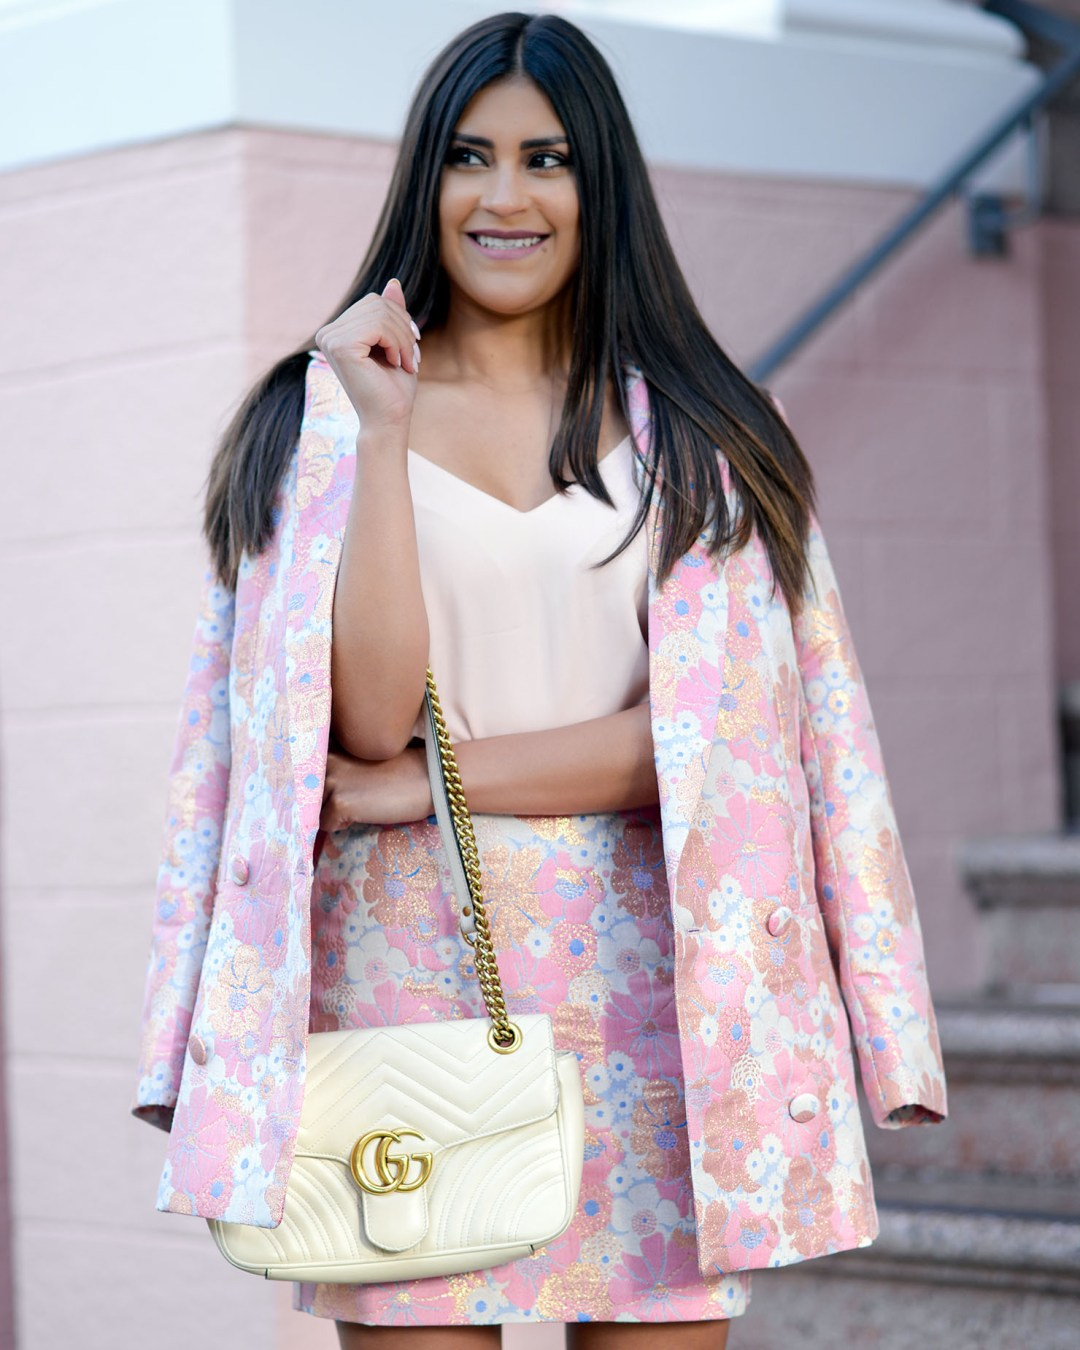 Lifestyle blogger Kelsey Kaplan of Kelsey Kaplan Fashion wearing pink power suit and white gucci purse